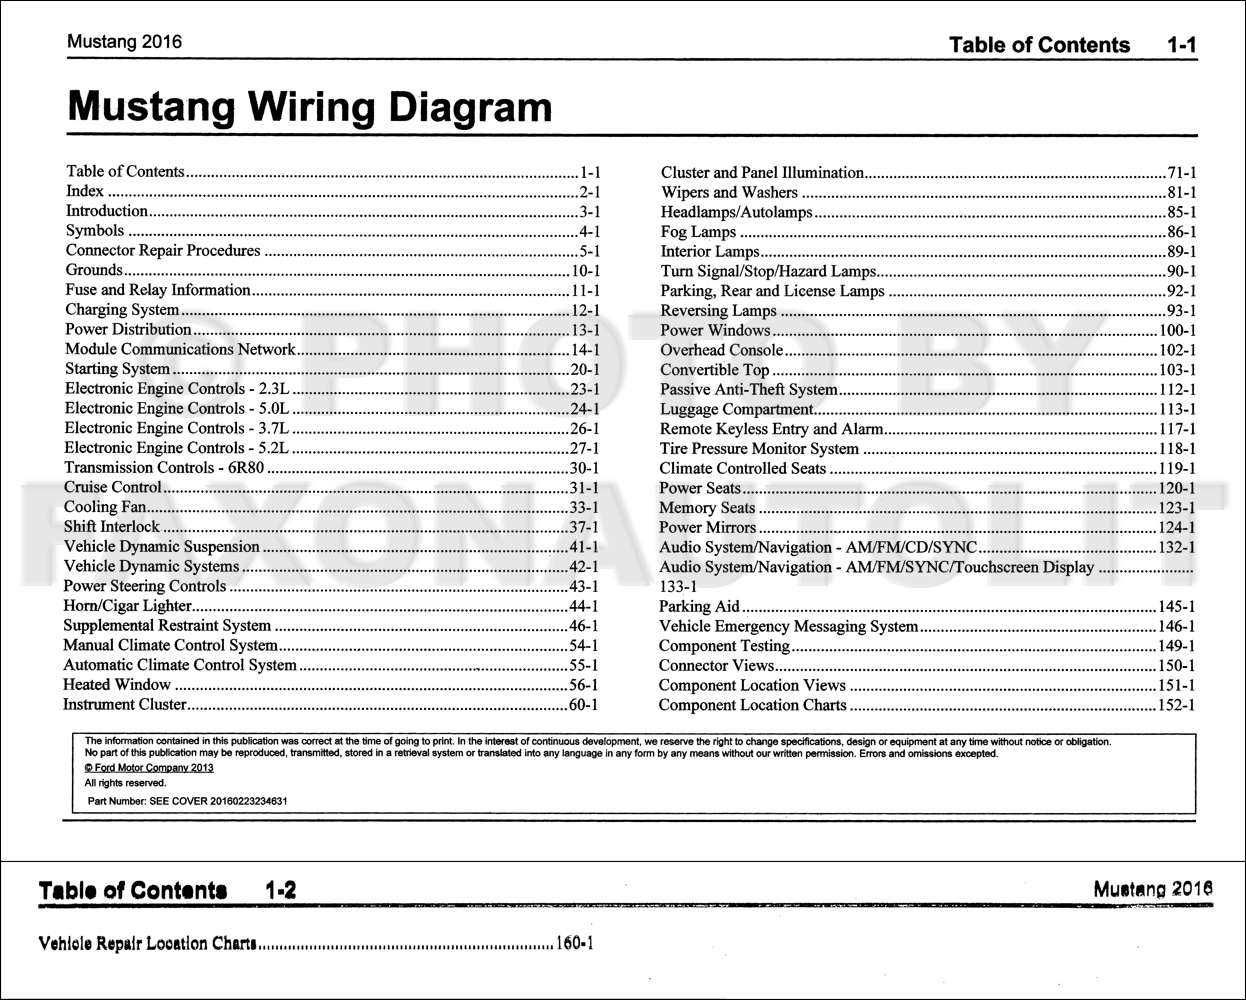 2006 Ford Mustang Wiring Diagram